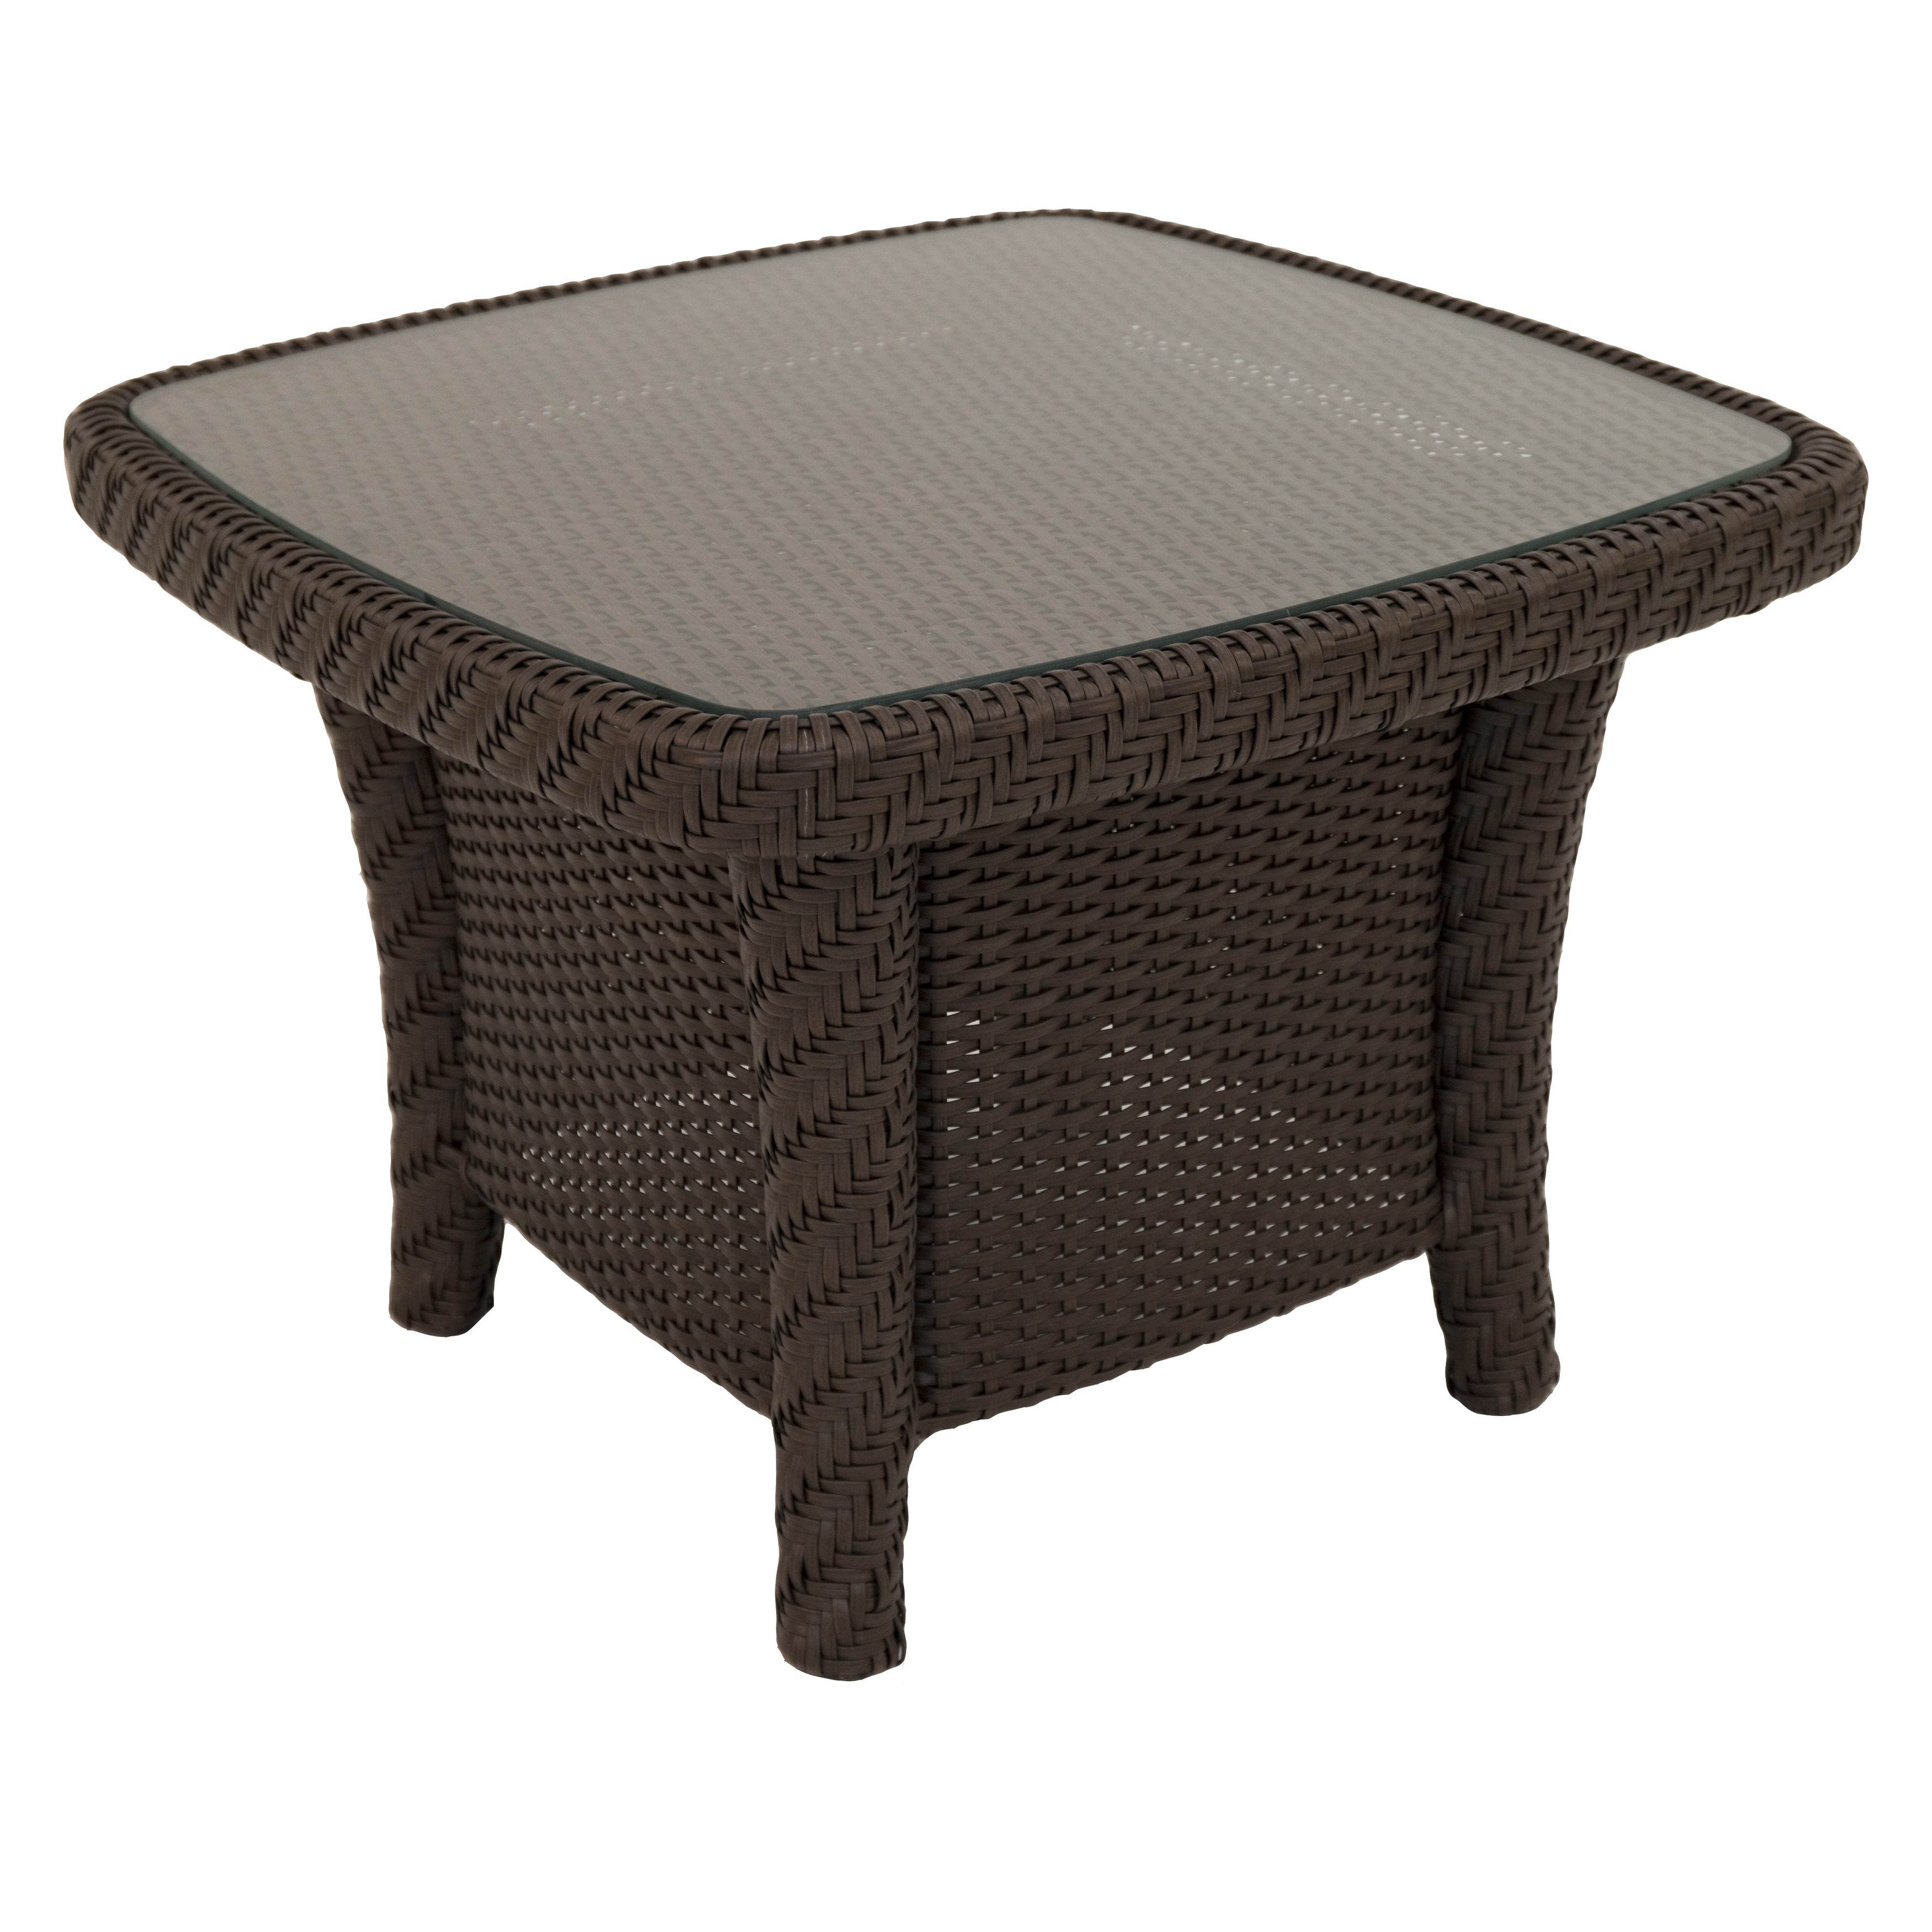 LC Square Chestnut Coffee Table (Chestnut), Brown, Patio ...